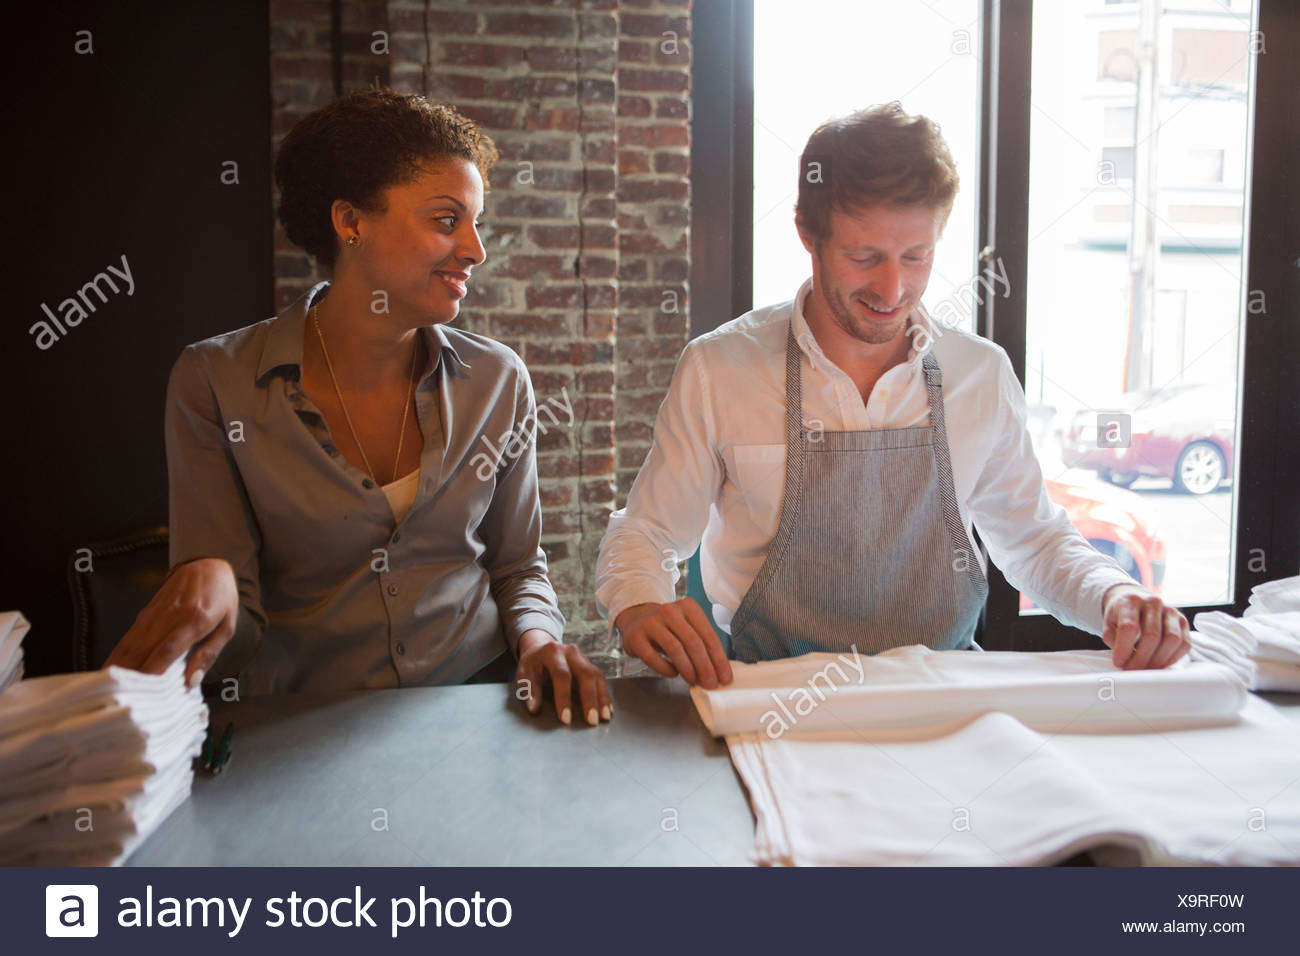 Chef and waitress preparing napkins in restaurant - Stock Image